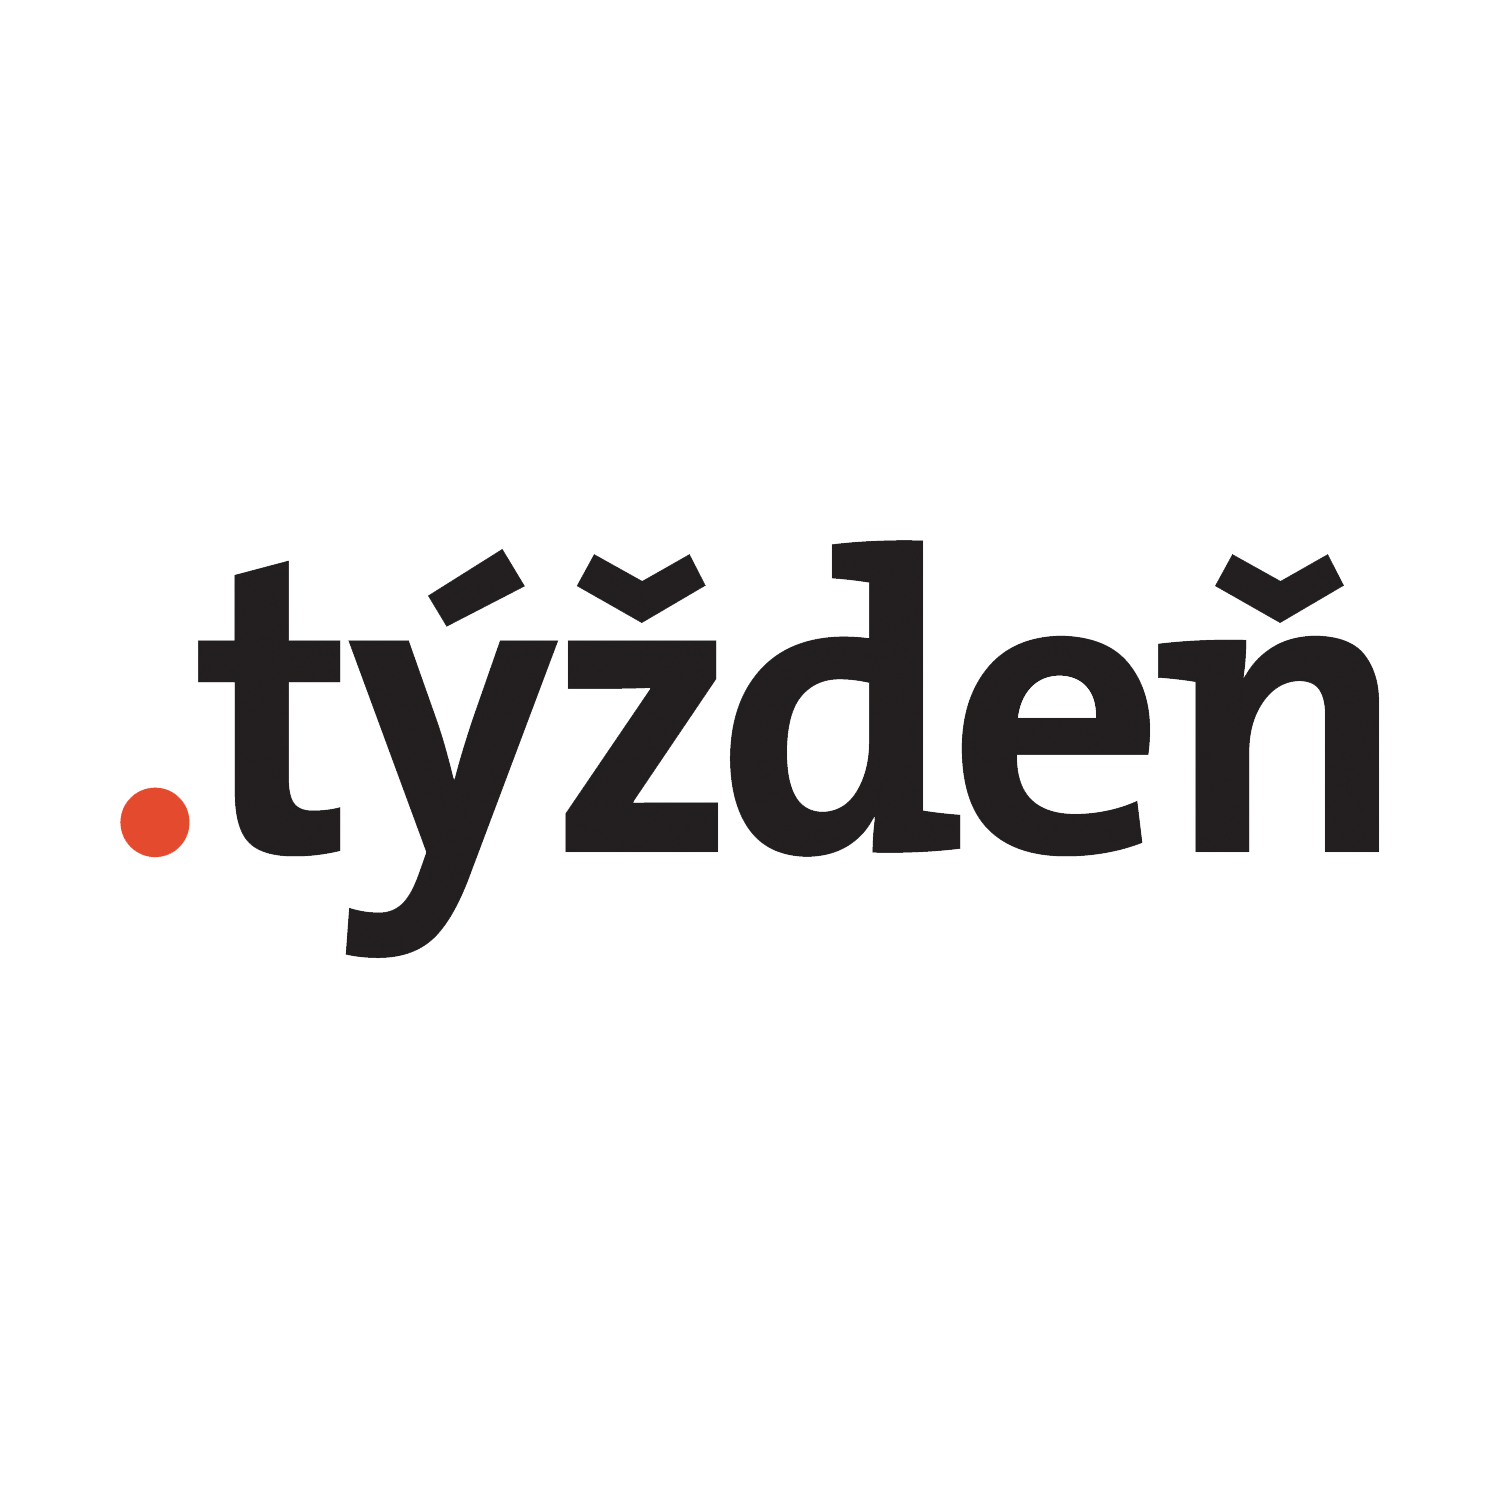 square-logo-Tyzden.png